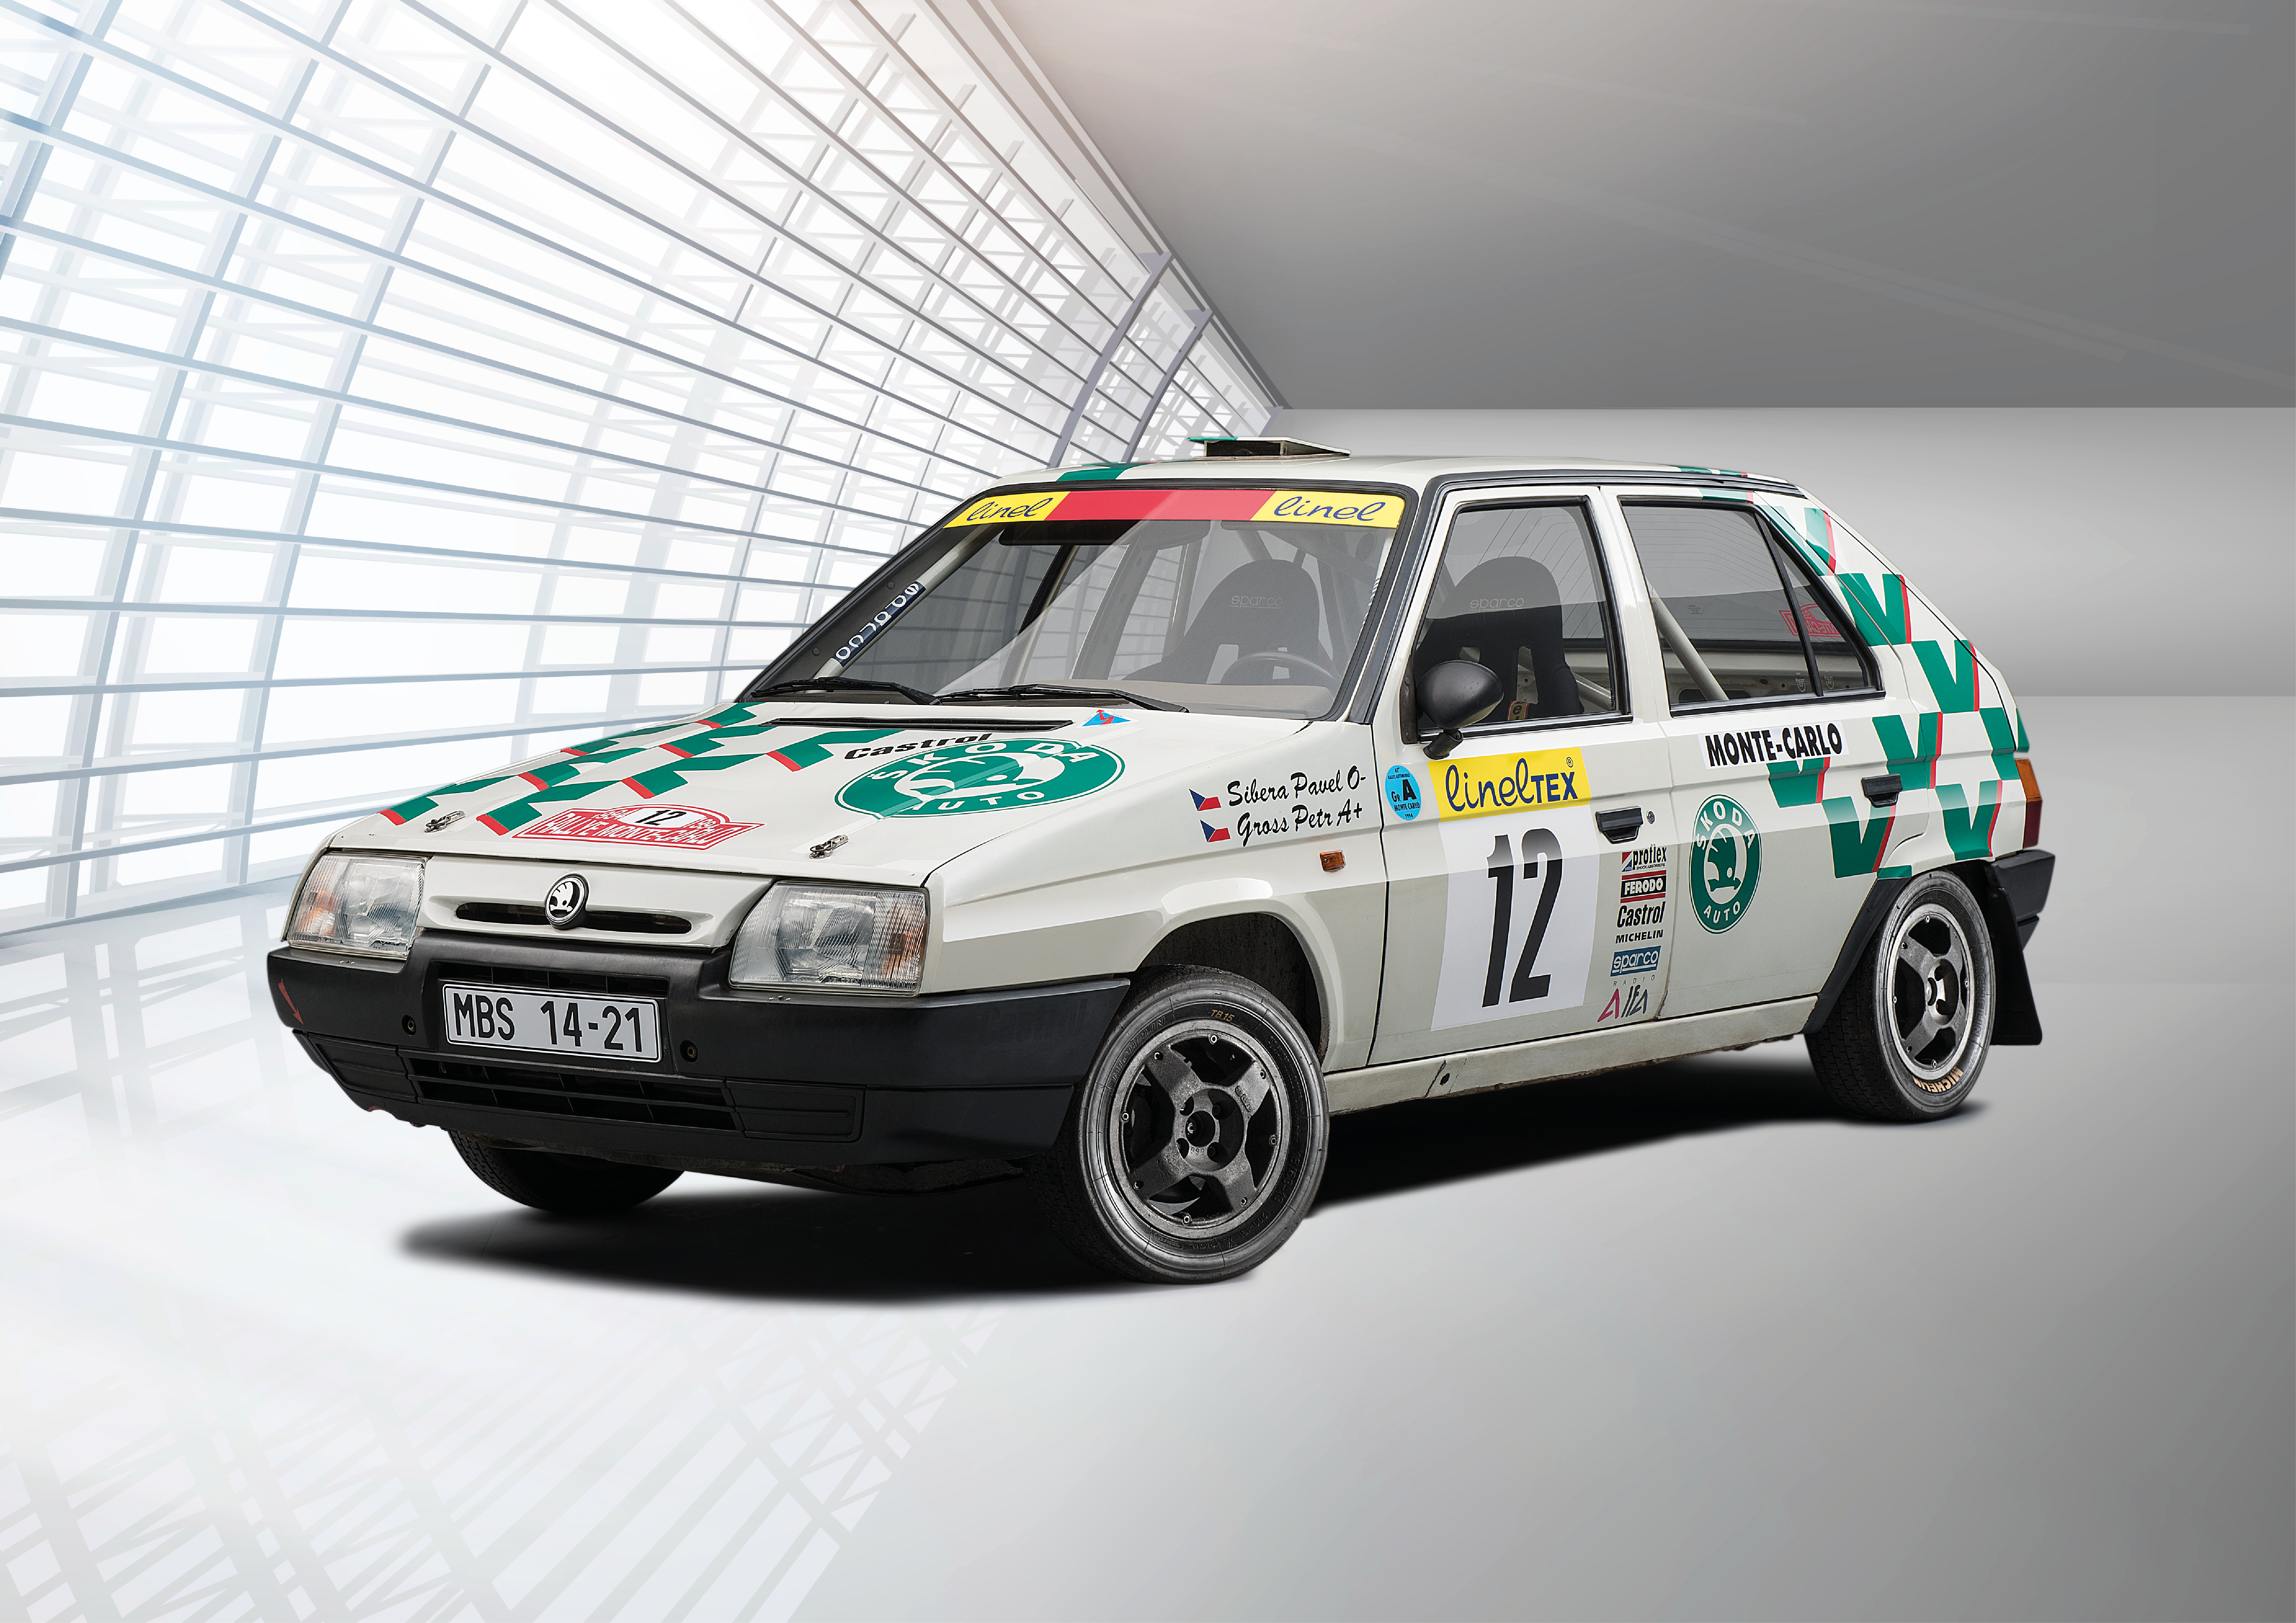 Motorsport versions of the SKODA FAVORIT (1989): All different – and yet familiar - Image 8